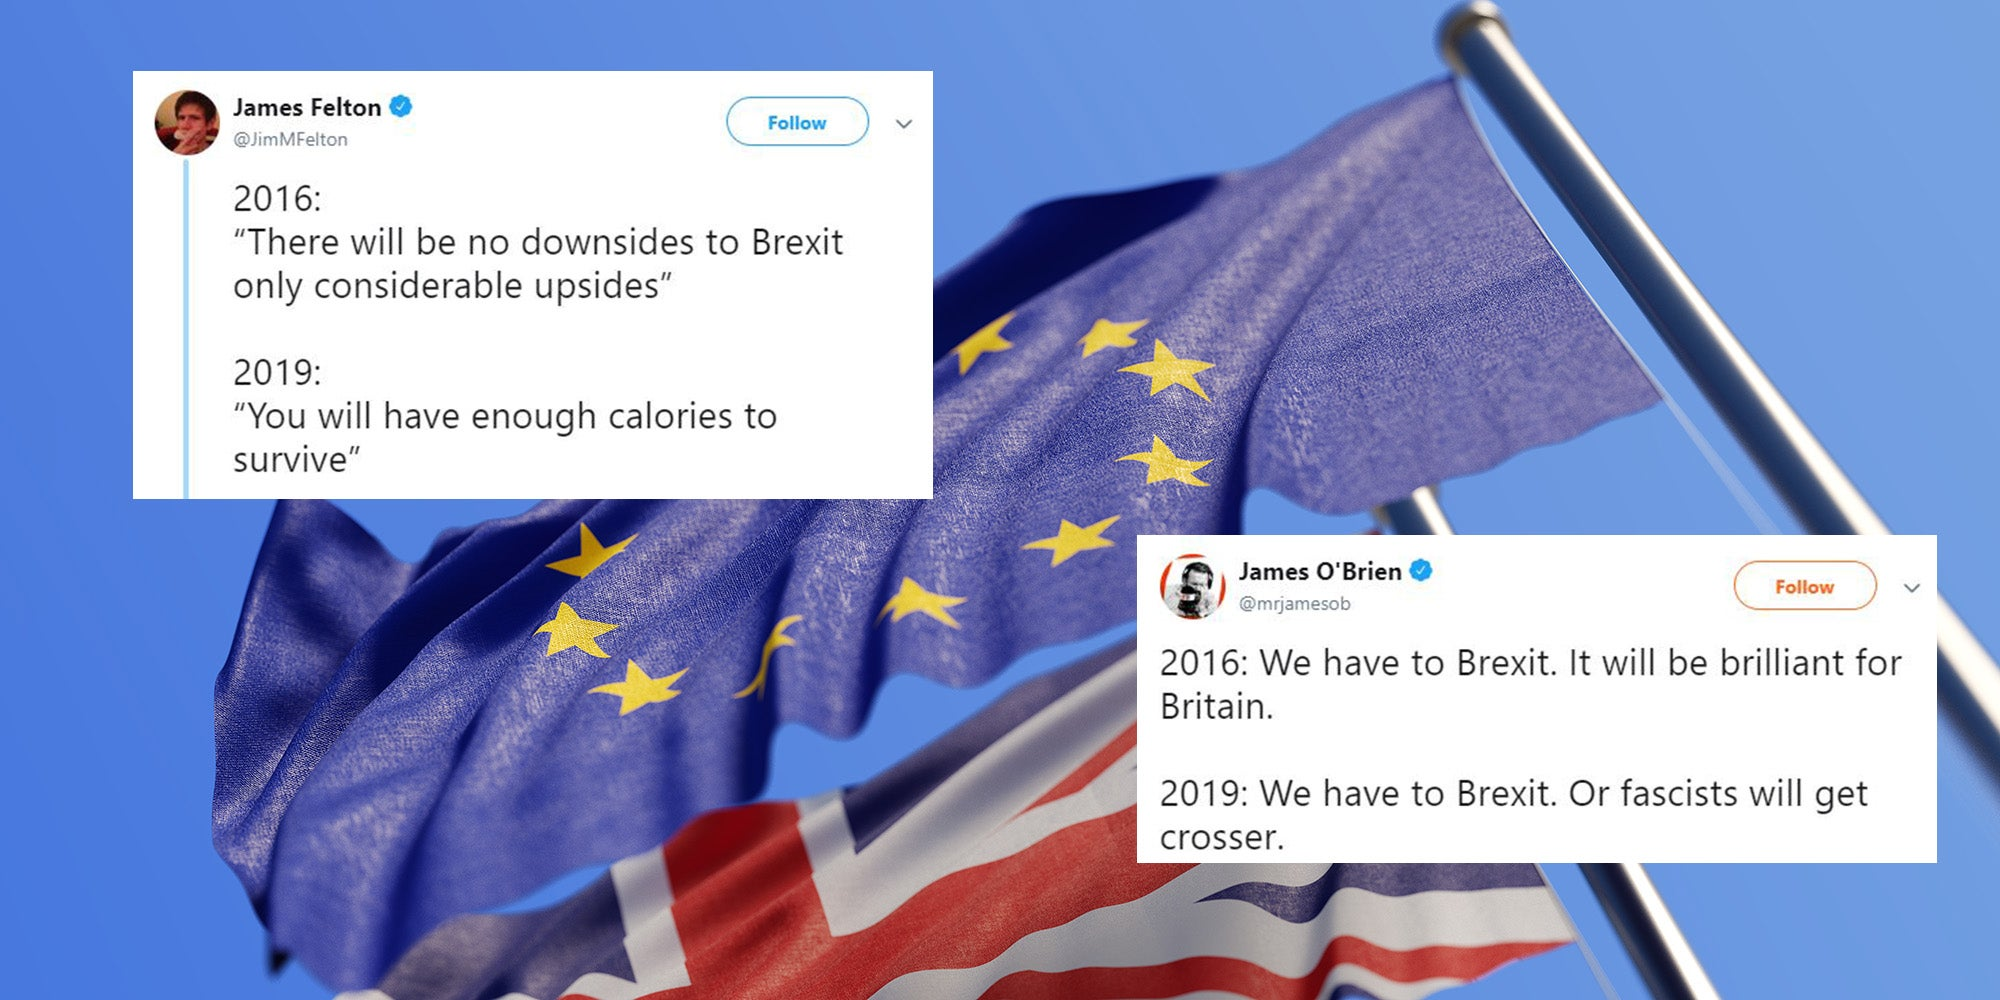 Here are some of the best reactions to brexit 2016 vs brexit 2019